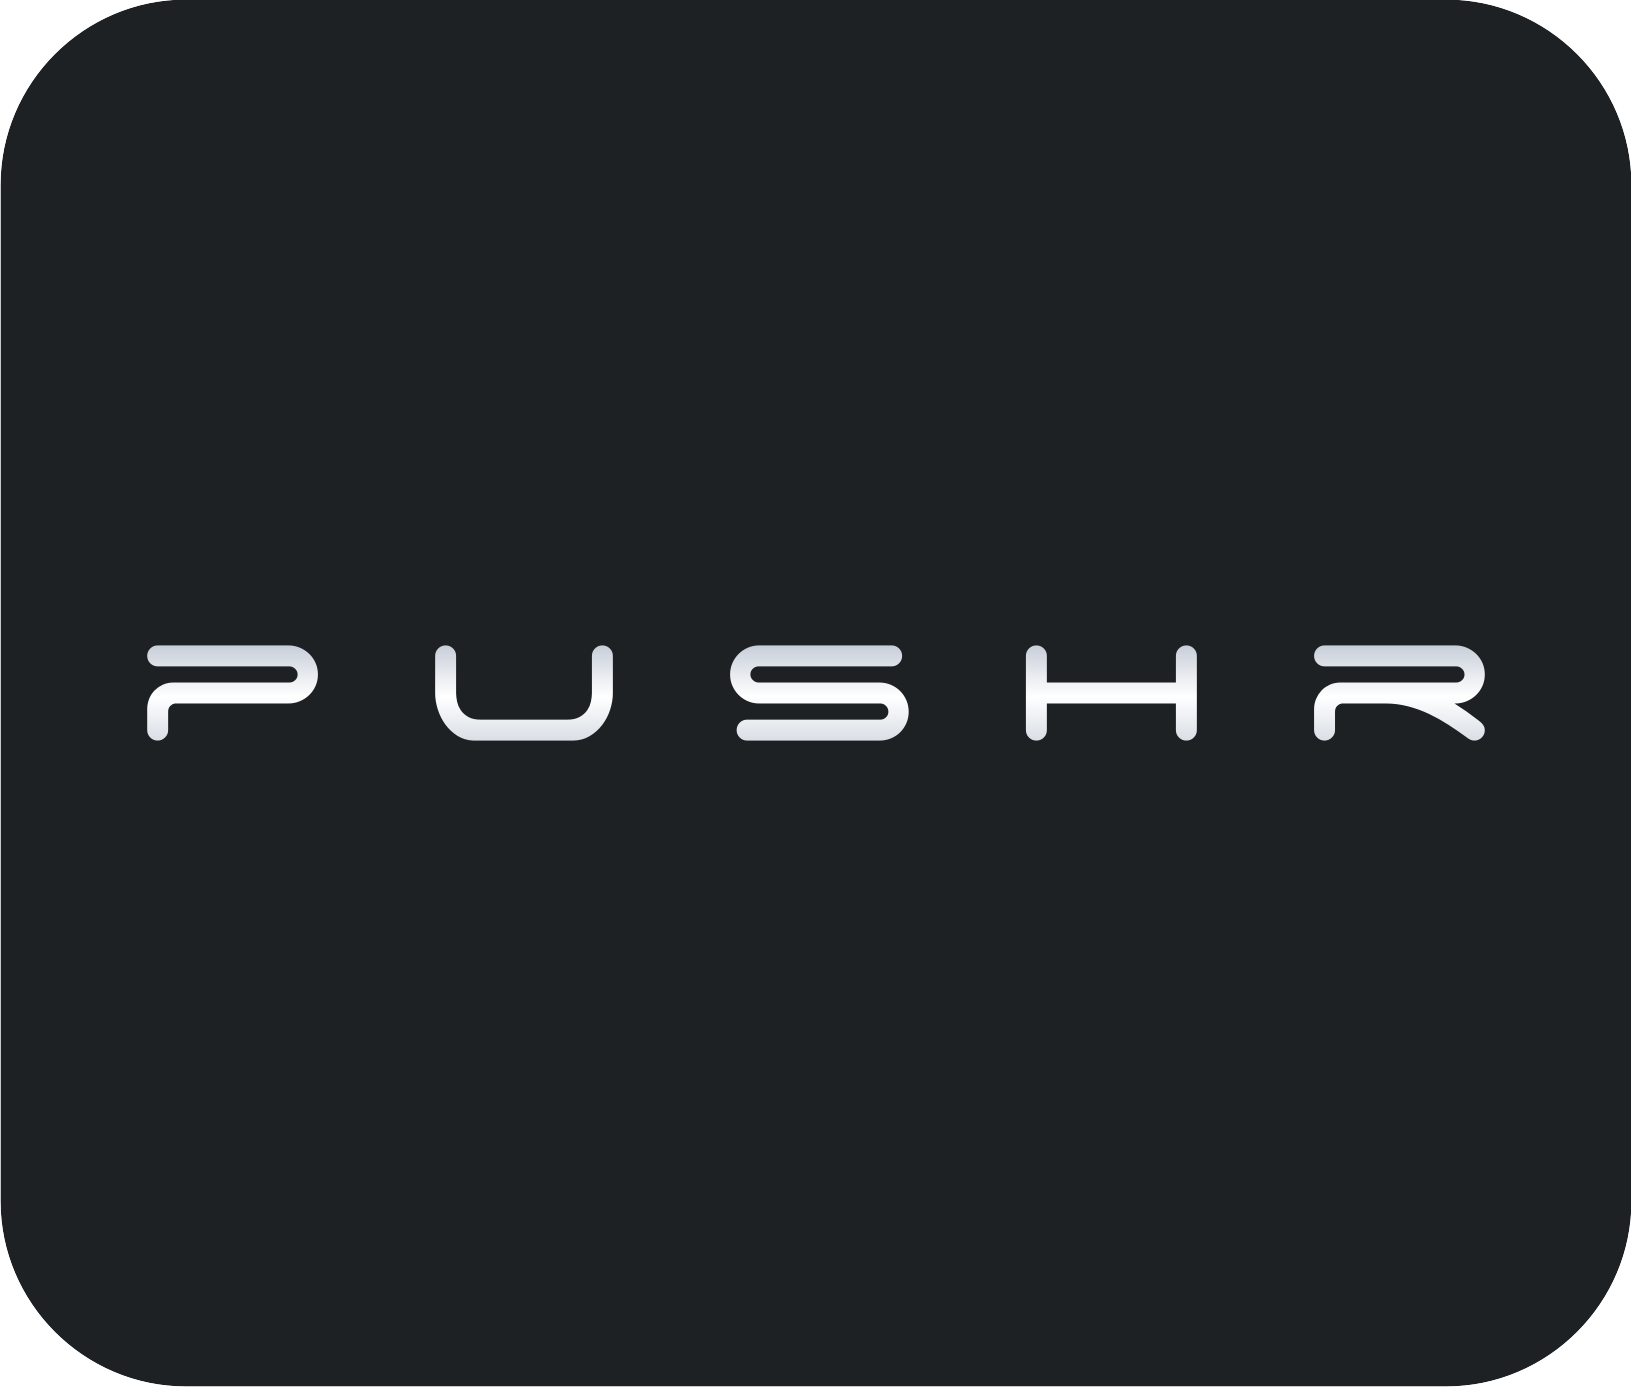 Logo for Pushr Inc.